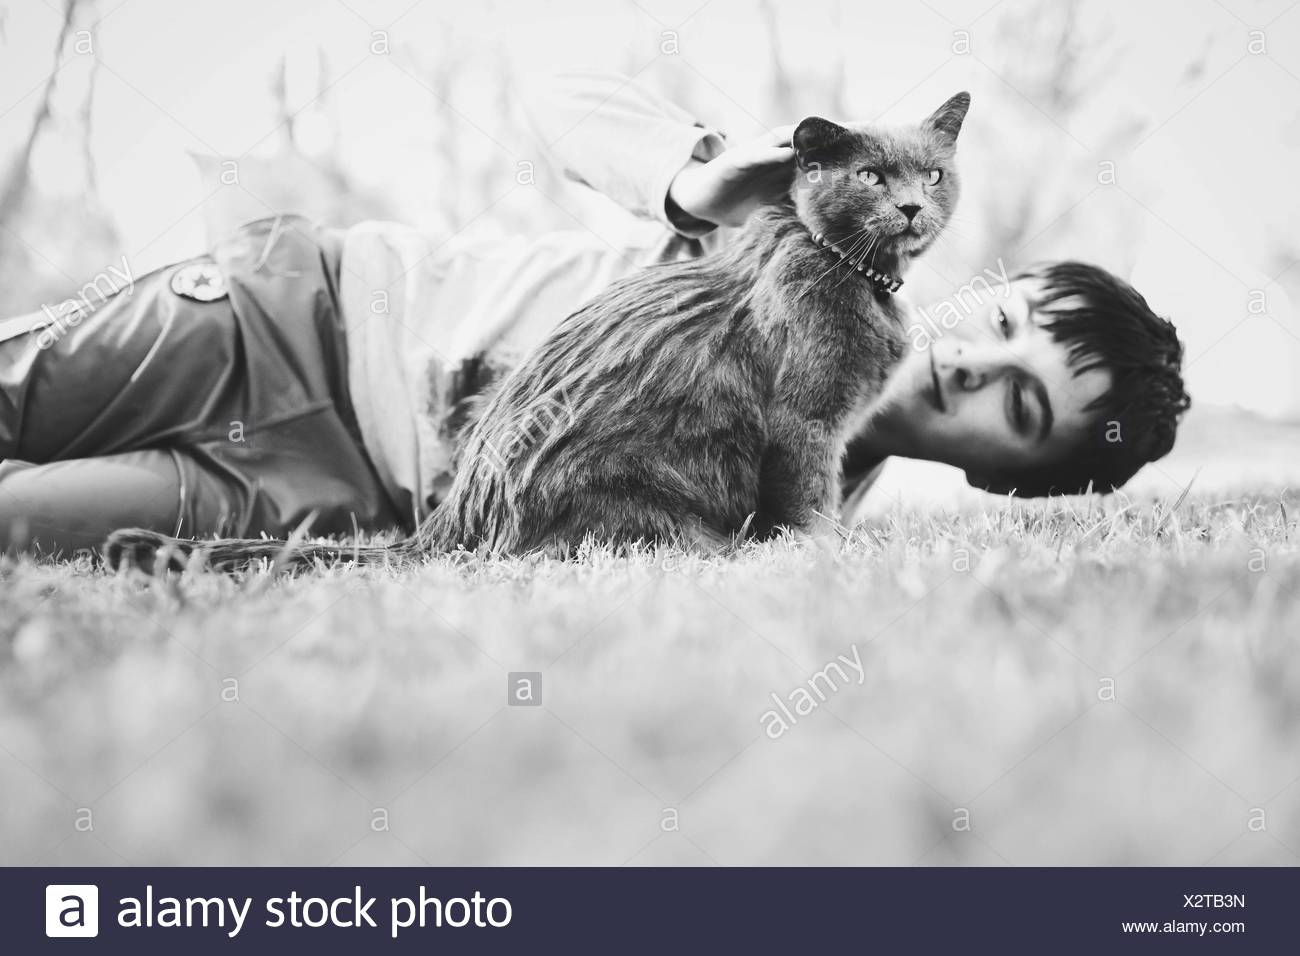 Boy Lying Down On Grassy Field With Cat - Stock Image